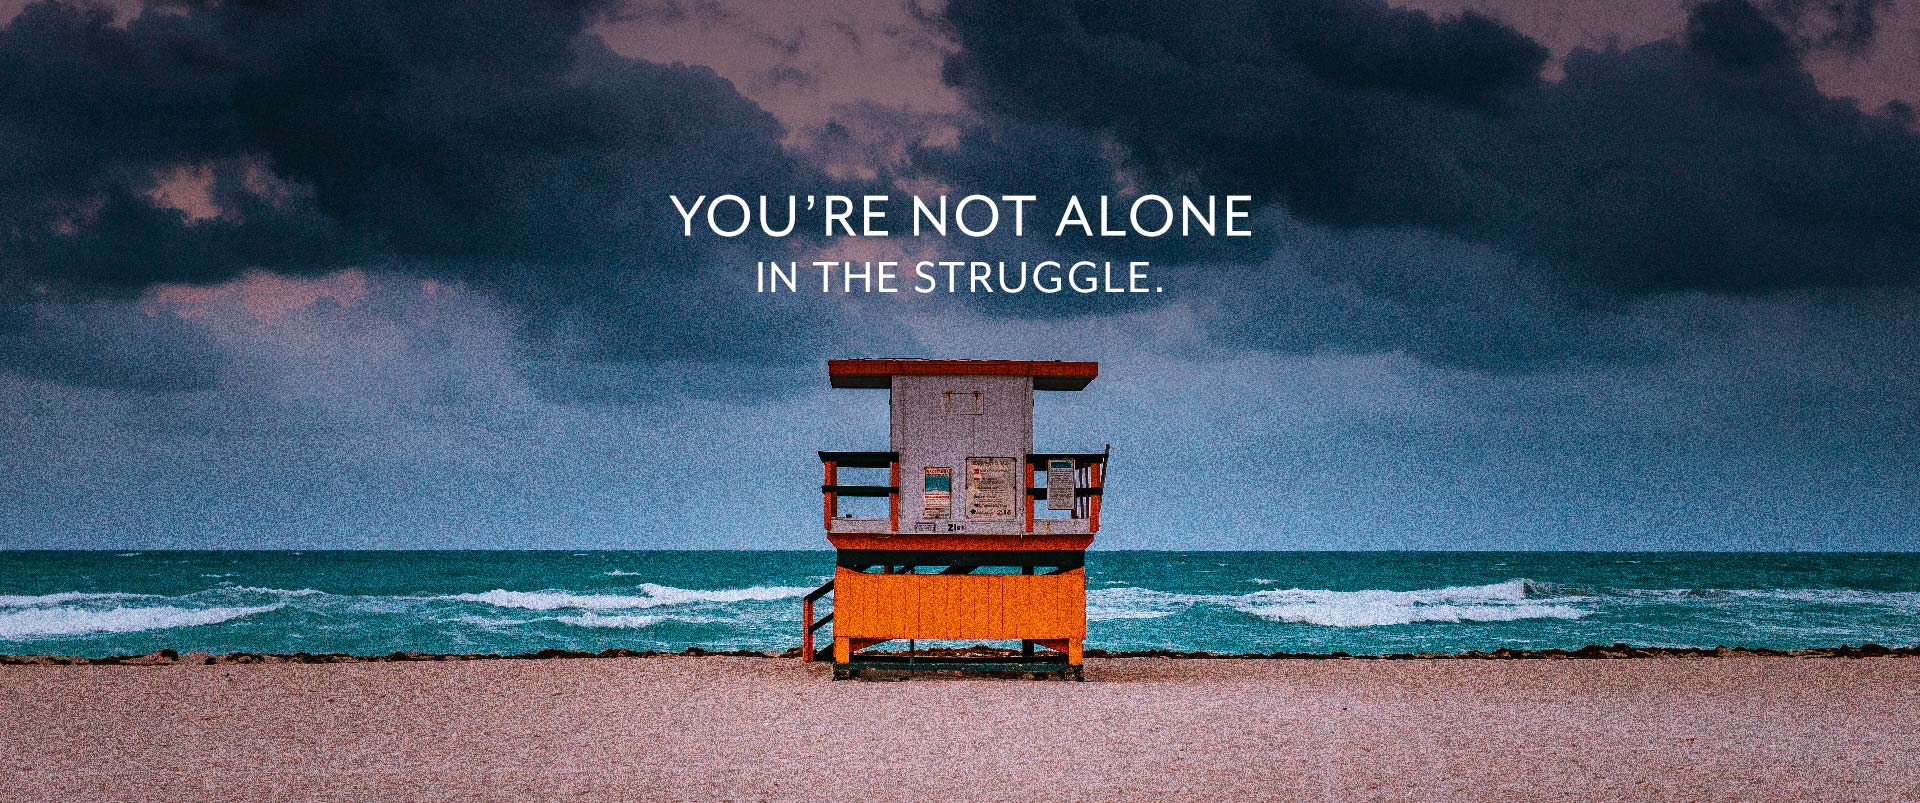 You're Not Alone In The Struggle